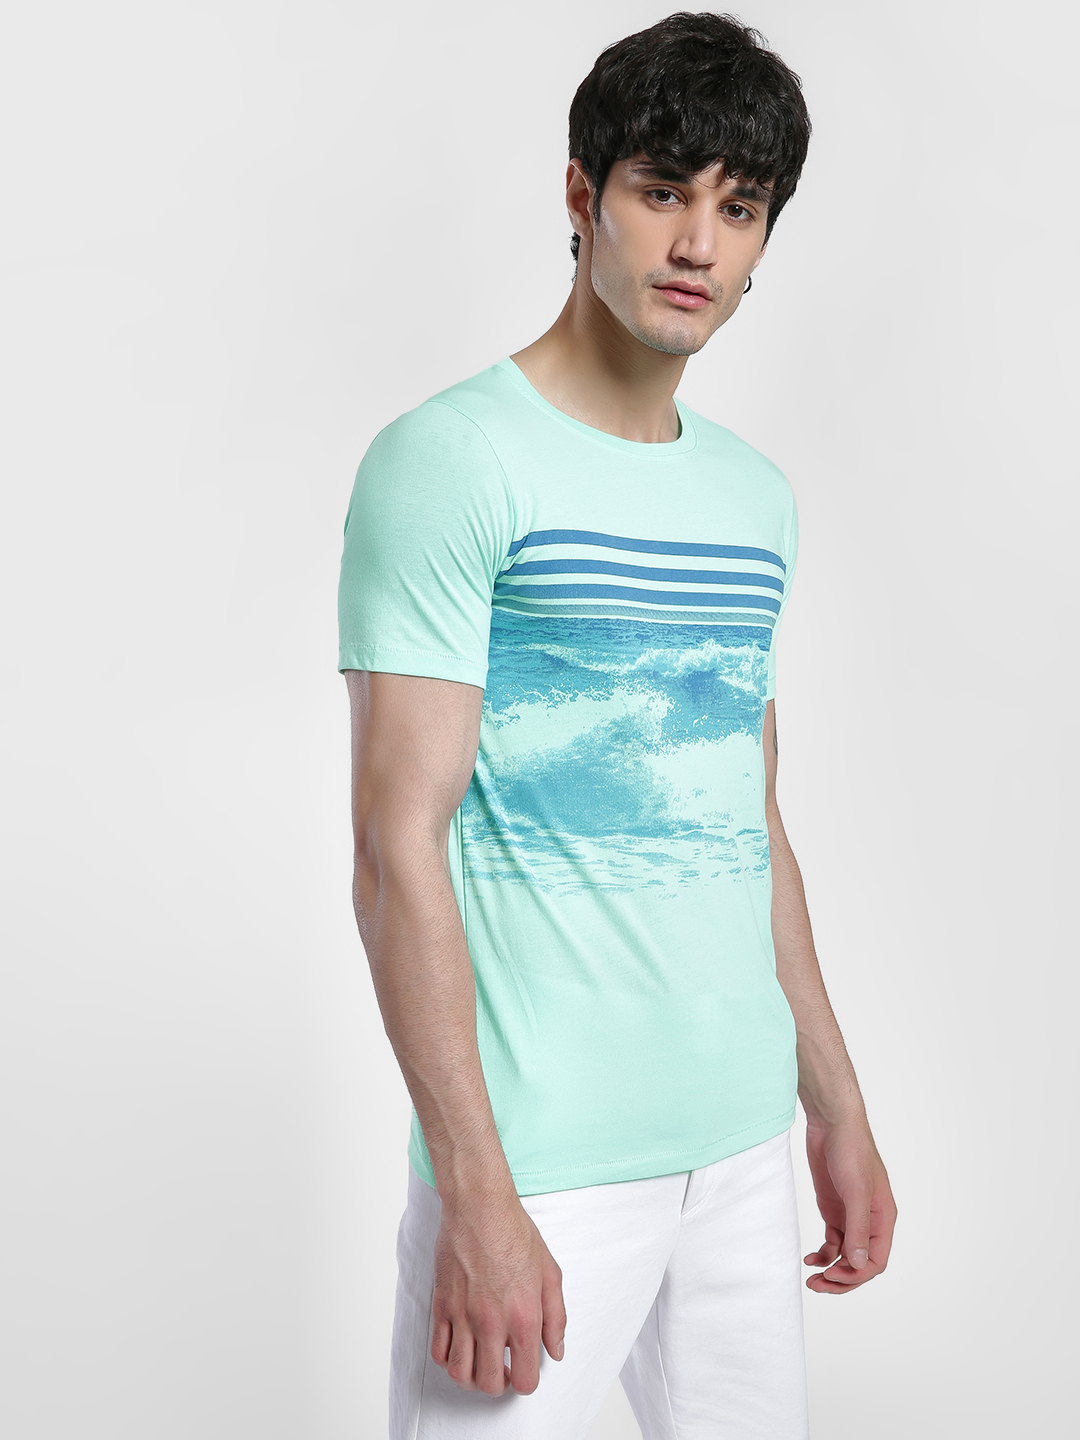 IMPACKT Multi Sea Print Short Sleeve T-Shirt 1